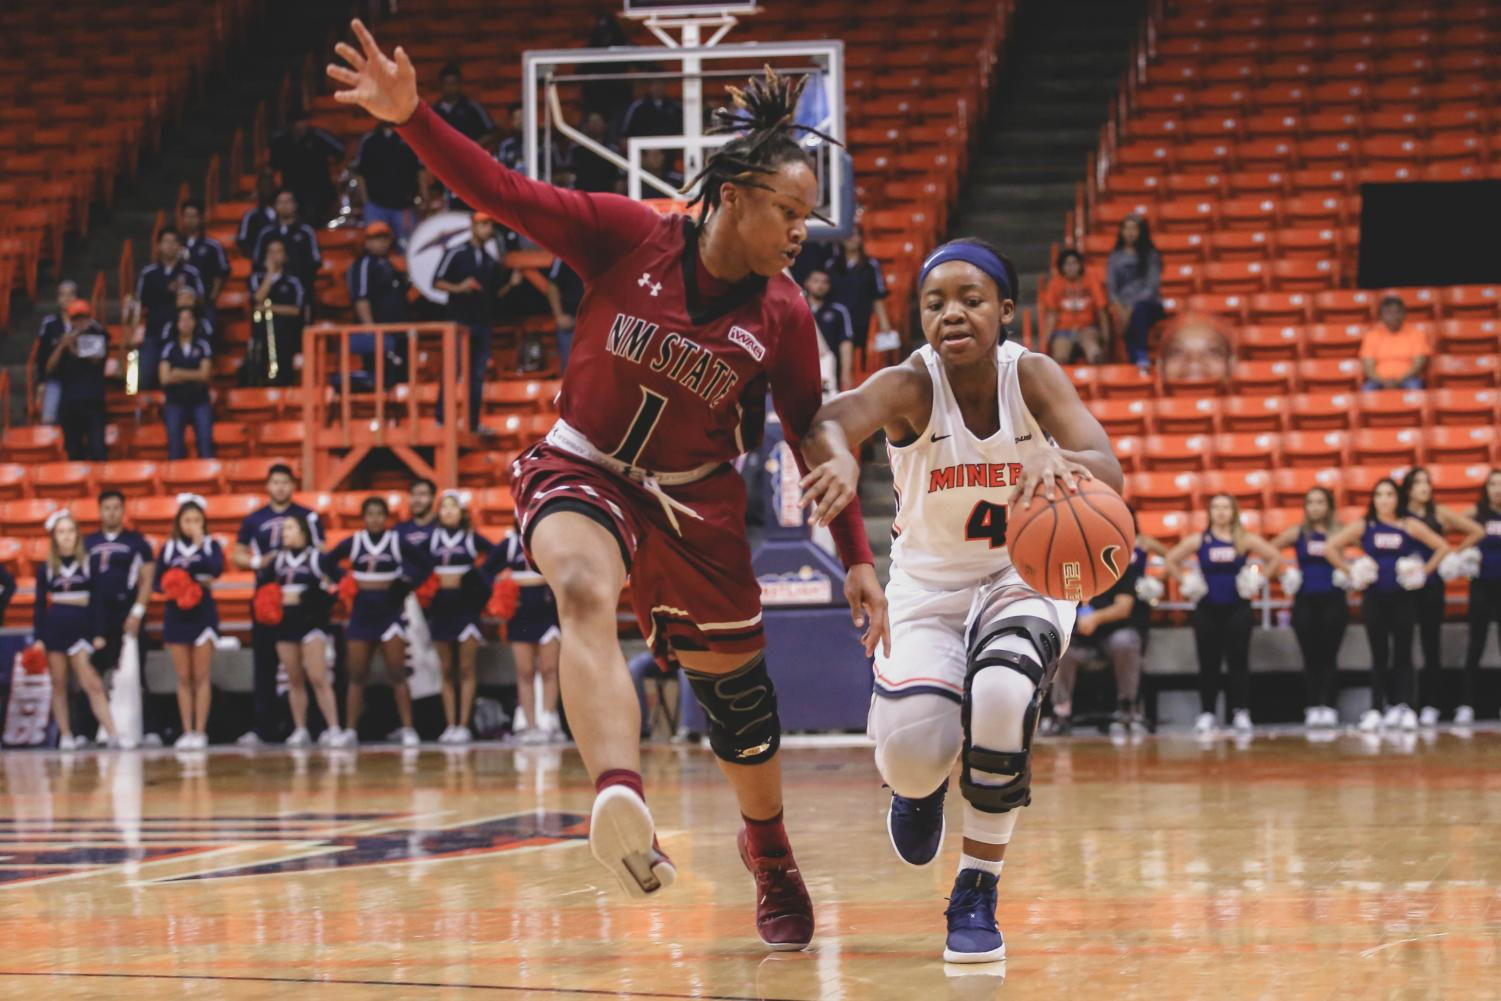 Junior+point+guard+Neidy+Ocuane+attempts+to+run+past+the+NMSU+defender.